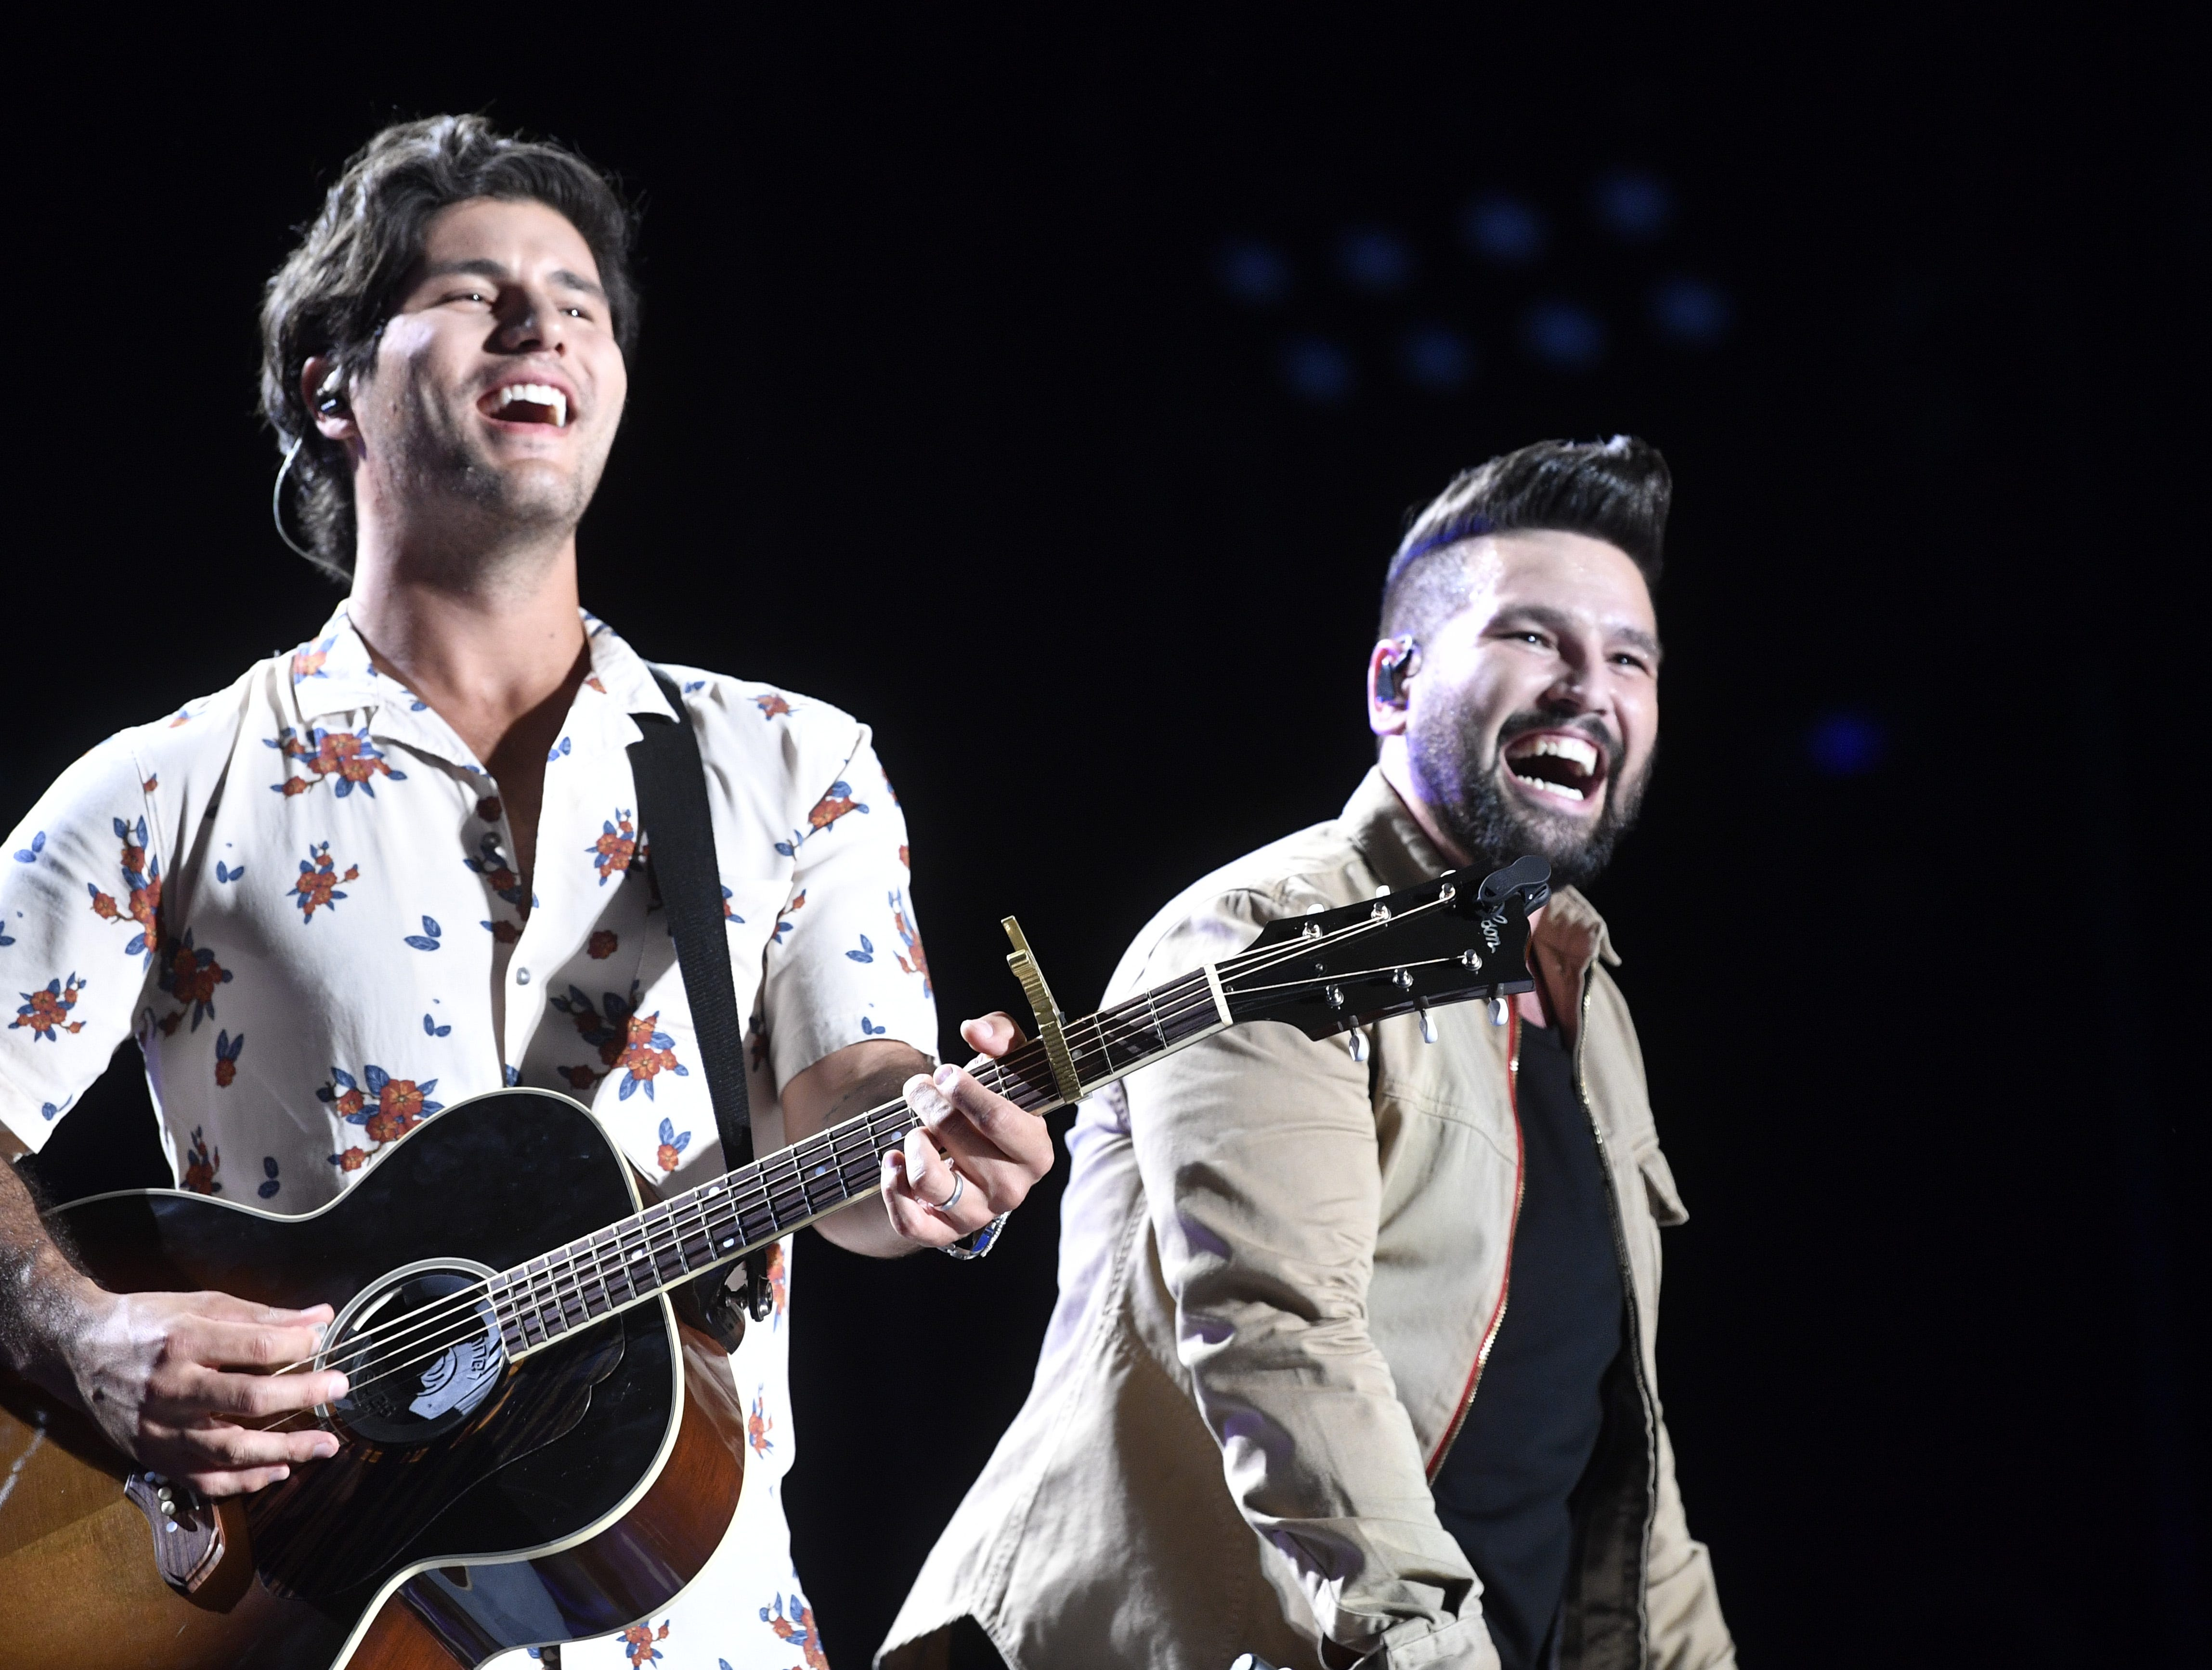 Dan + Shay are scheduled to play Nissan Stadium during CMA Fest 2019.